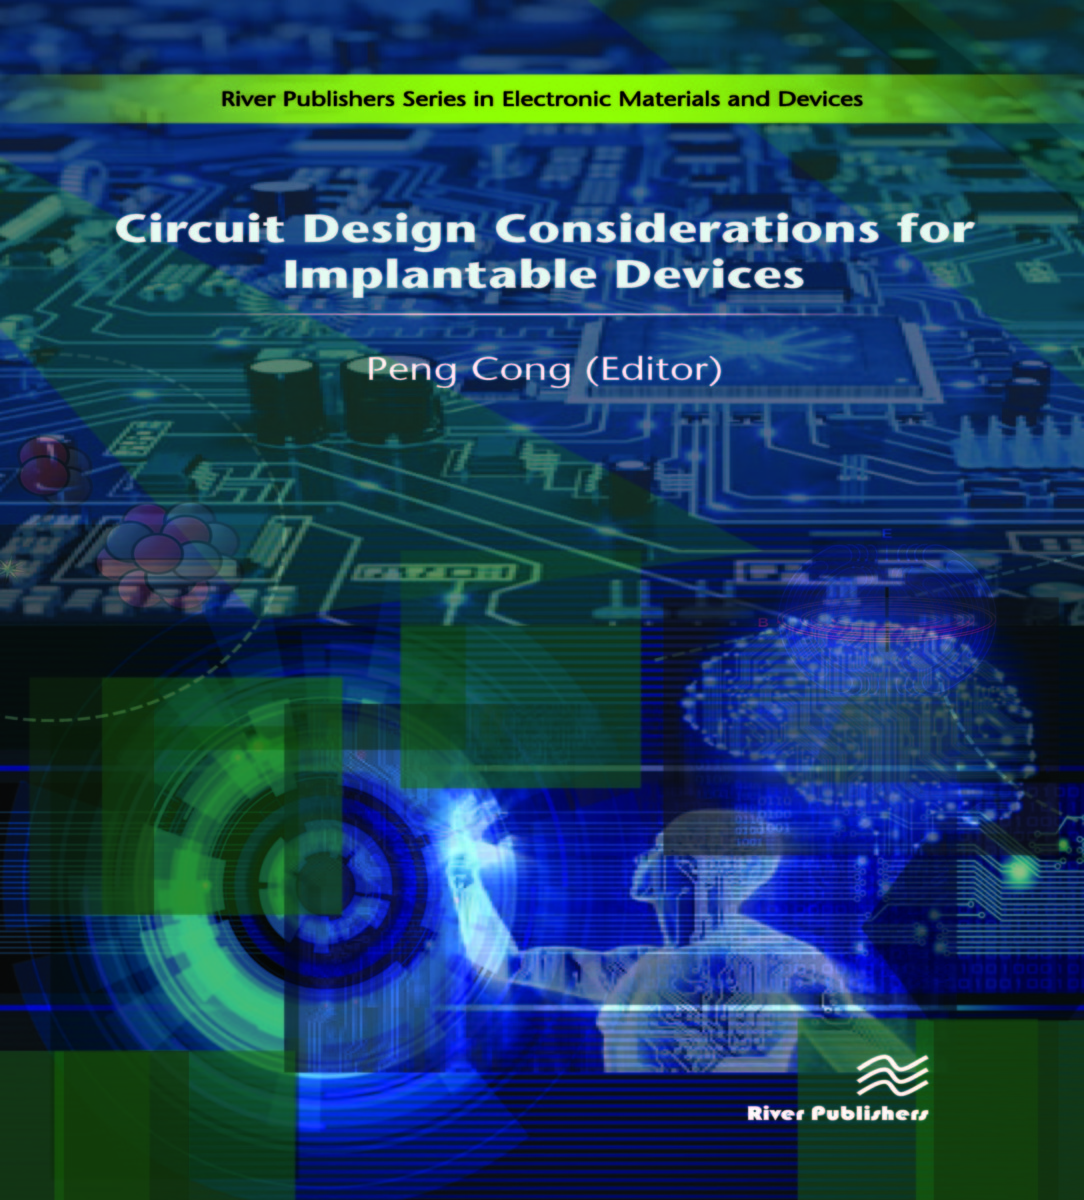 Circuit Design Considerations for Implantable Devices